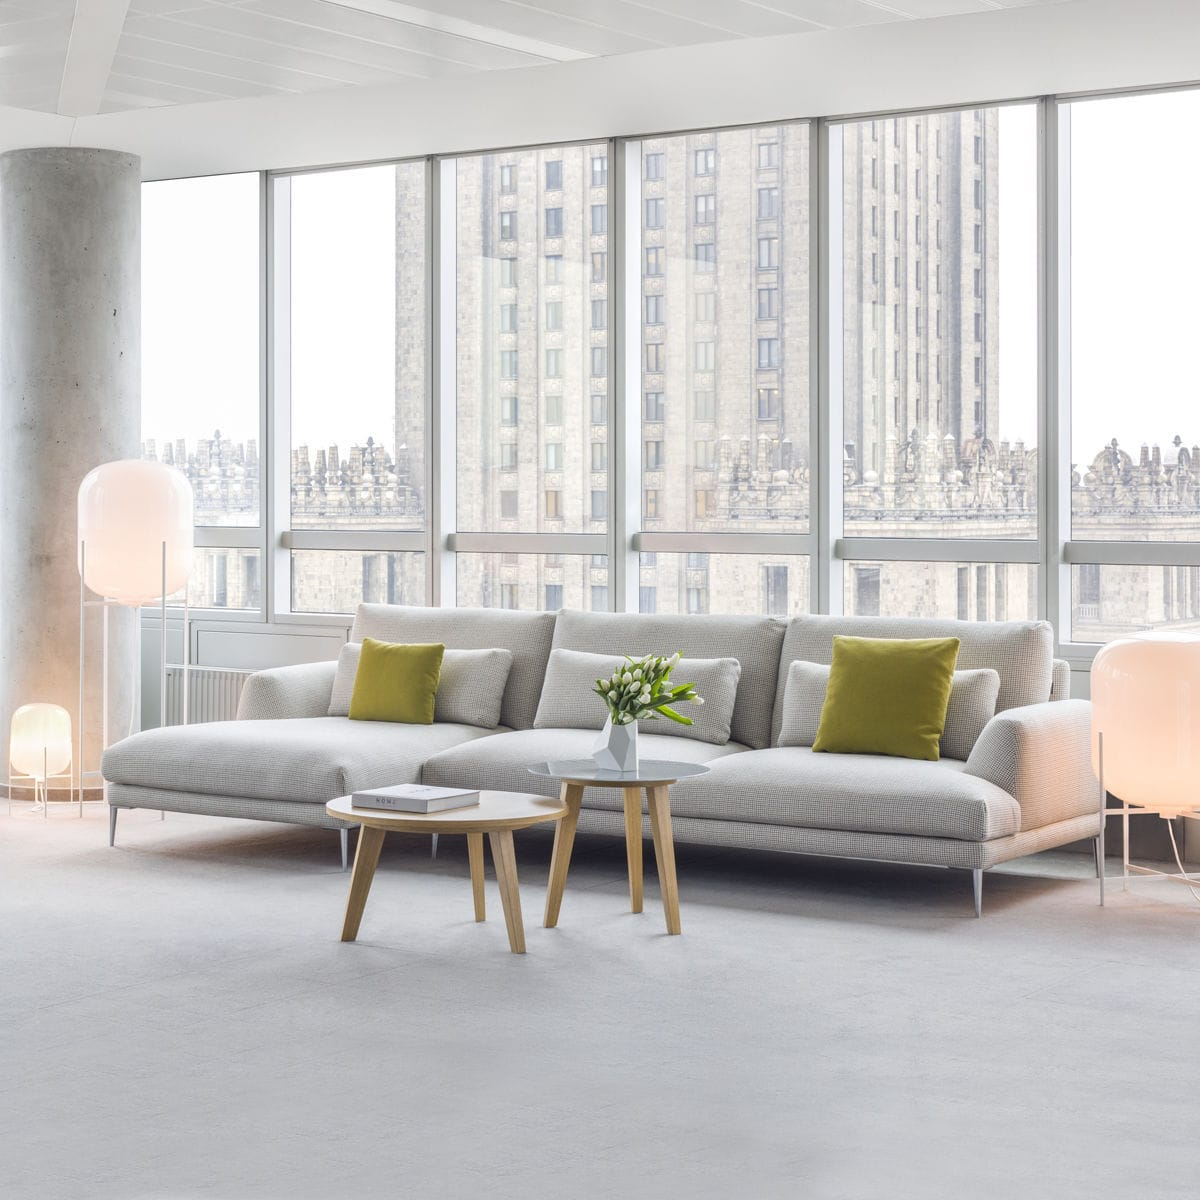 Full Size of Modernes Sofa Stoff 2 Pltze Wei Classic Comforty Videos Federkern Walter Knoll Husse Englisches Sitzhöhe 55 Cm Bunt Sofort Lieferbar Comfortmaster Großes Big Sofa Weißes Sofa